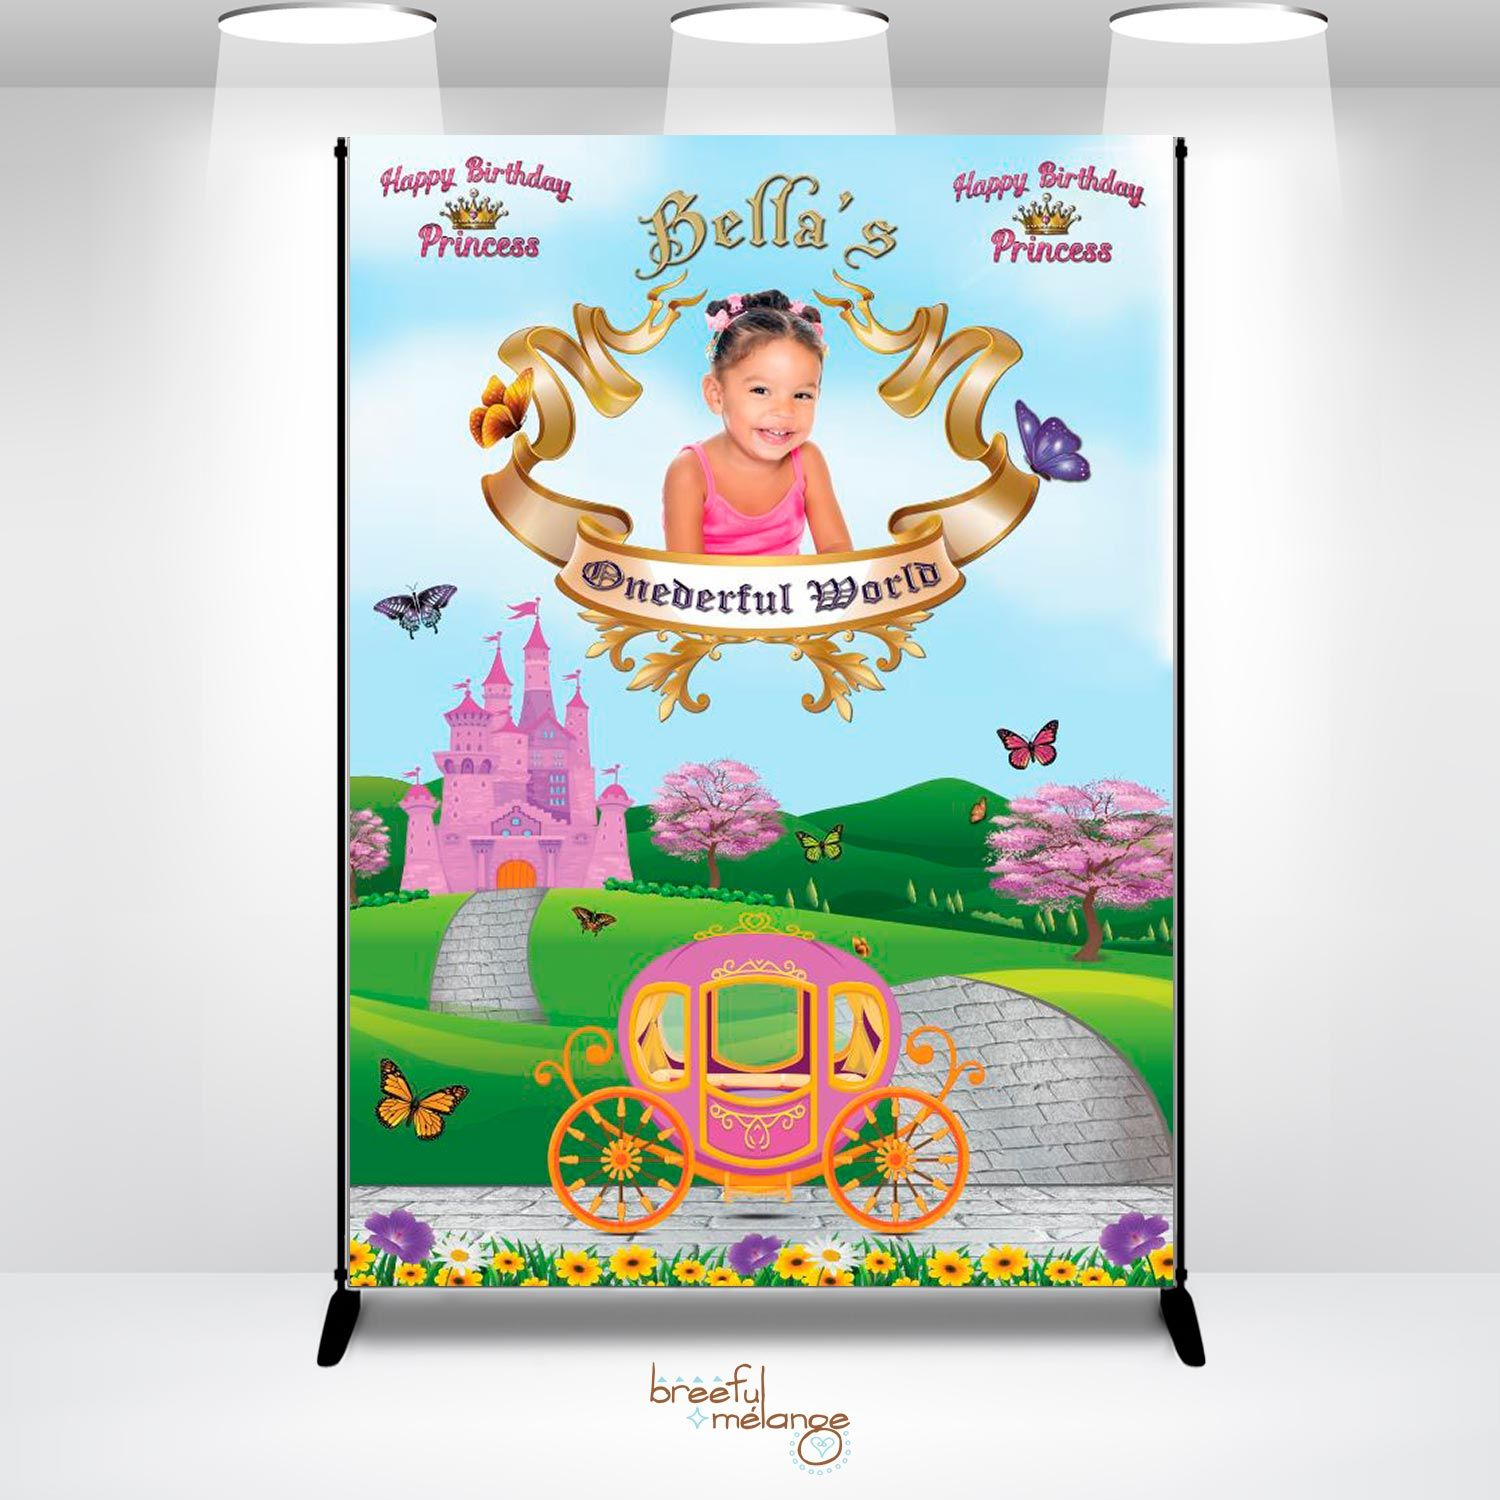 Onederful World Princess Birthday Backdrop. This Custom